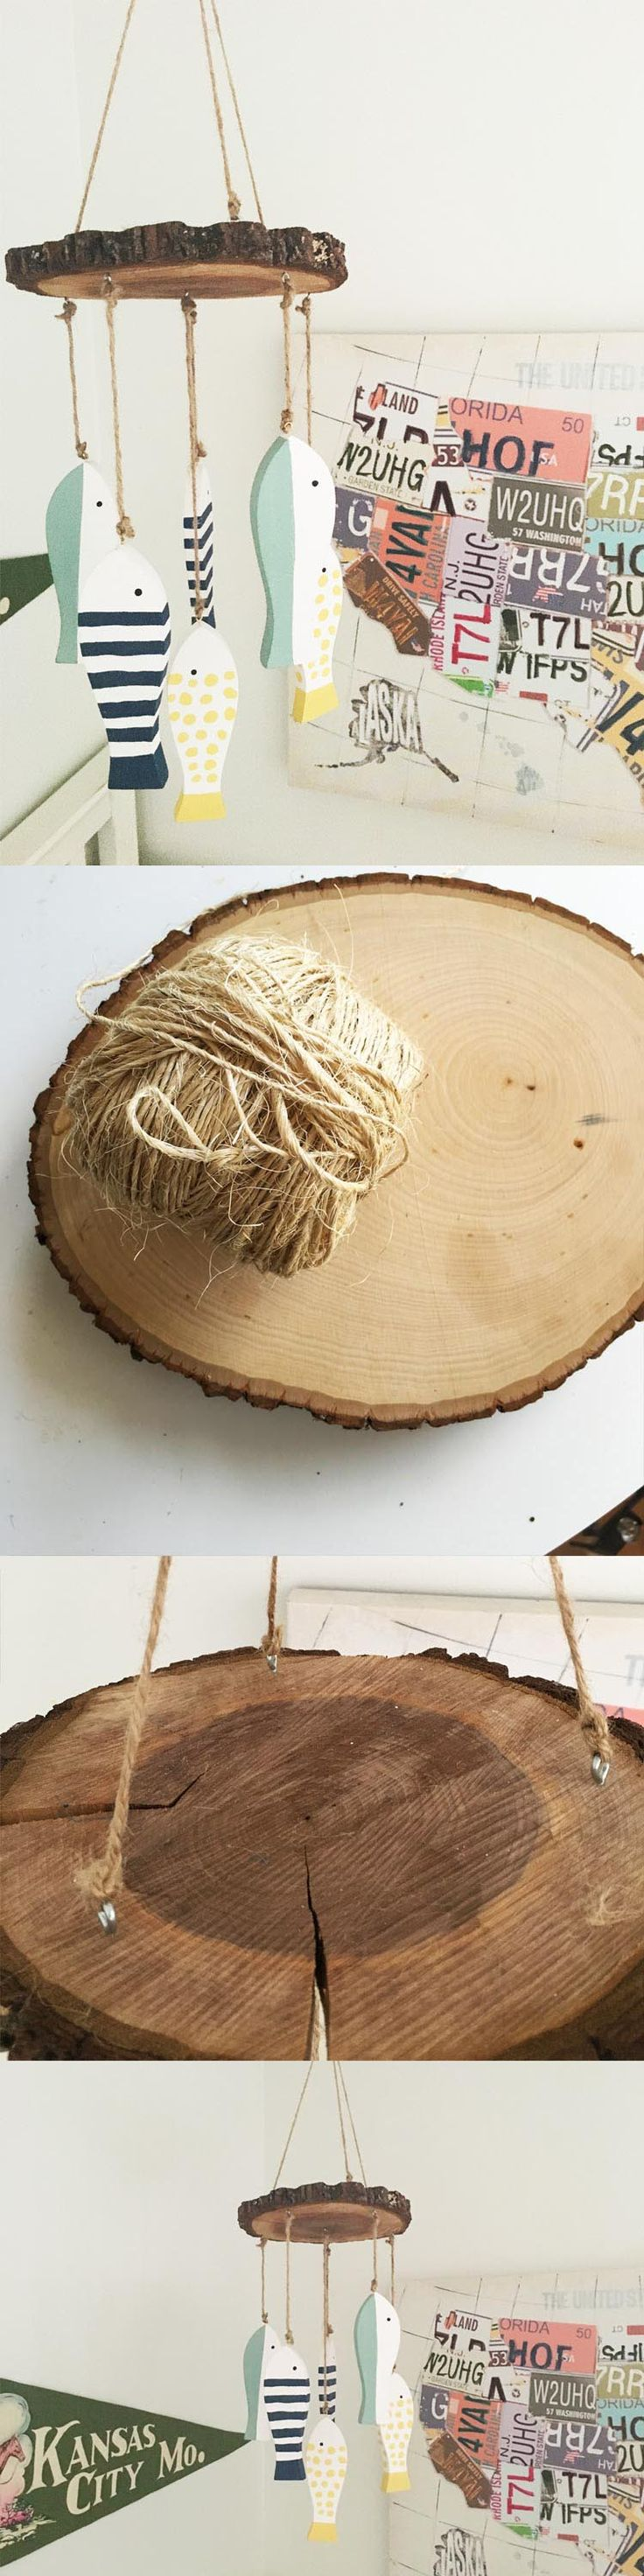 Saplings katie crib for sale - All You Need Is A Wood Slice And A Few Other Materials To Make An Adorable